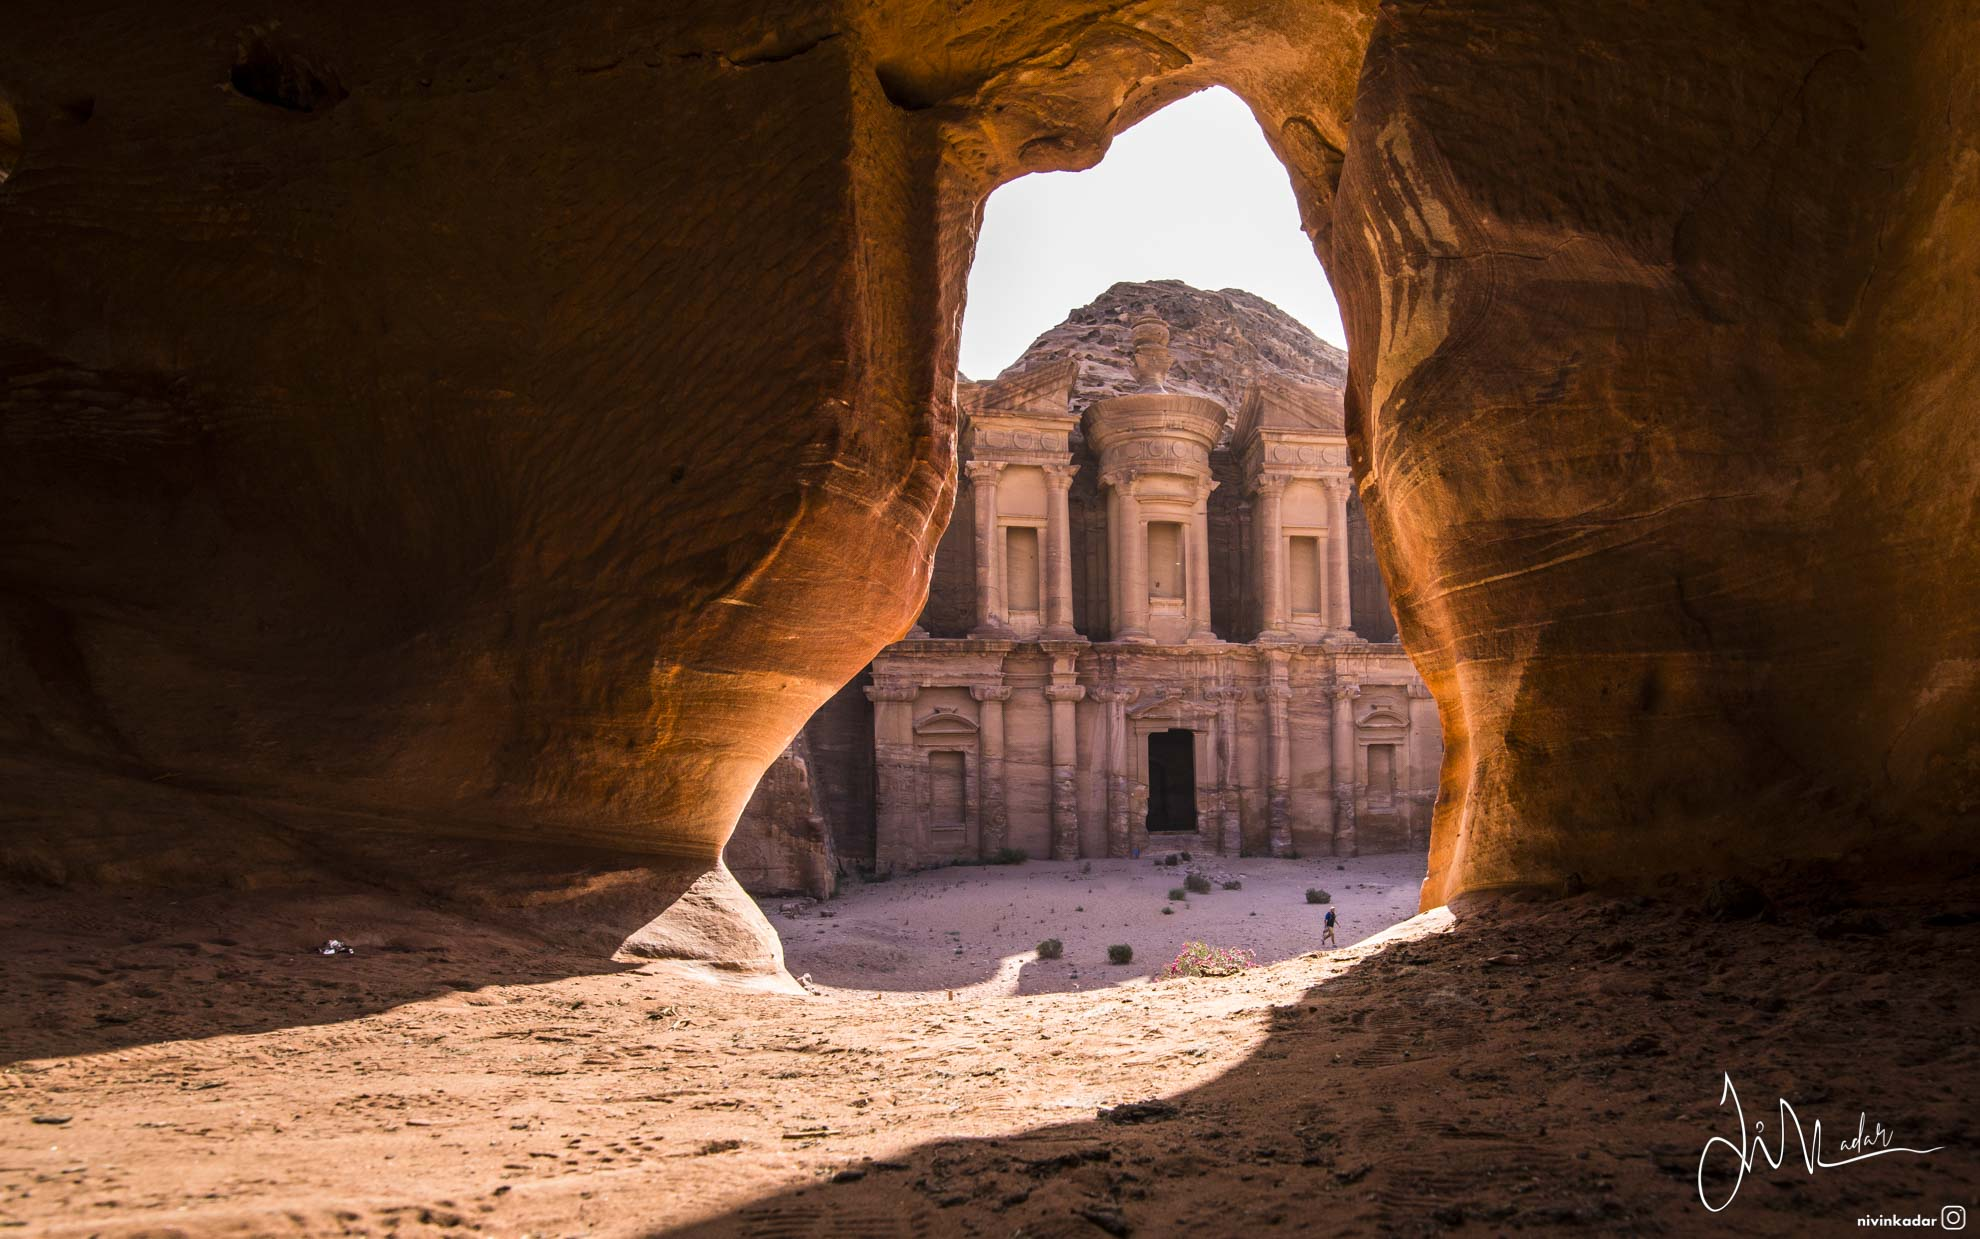 Petra – The lost city